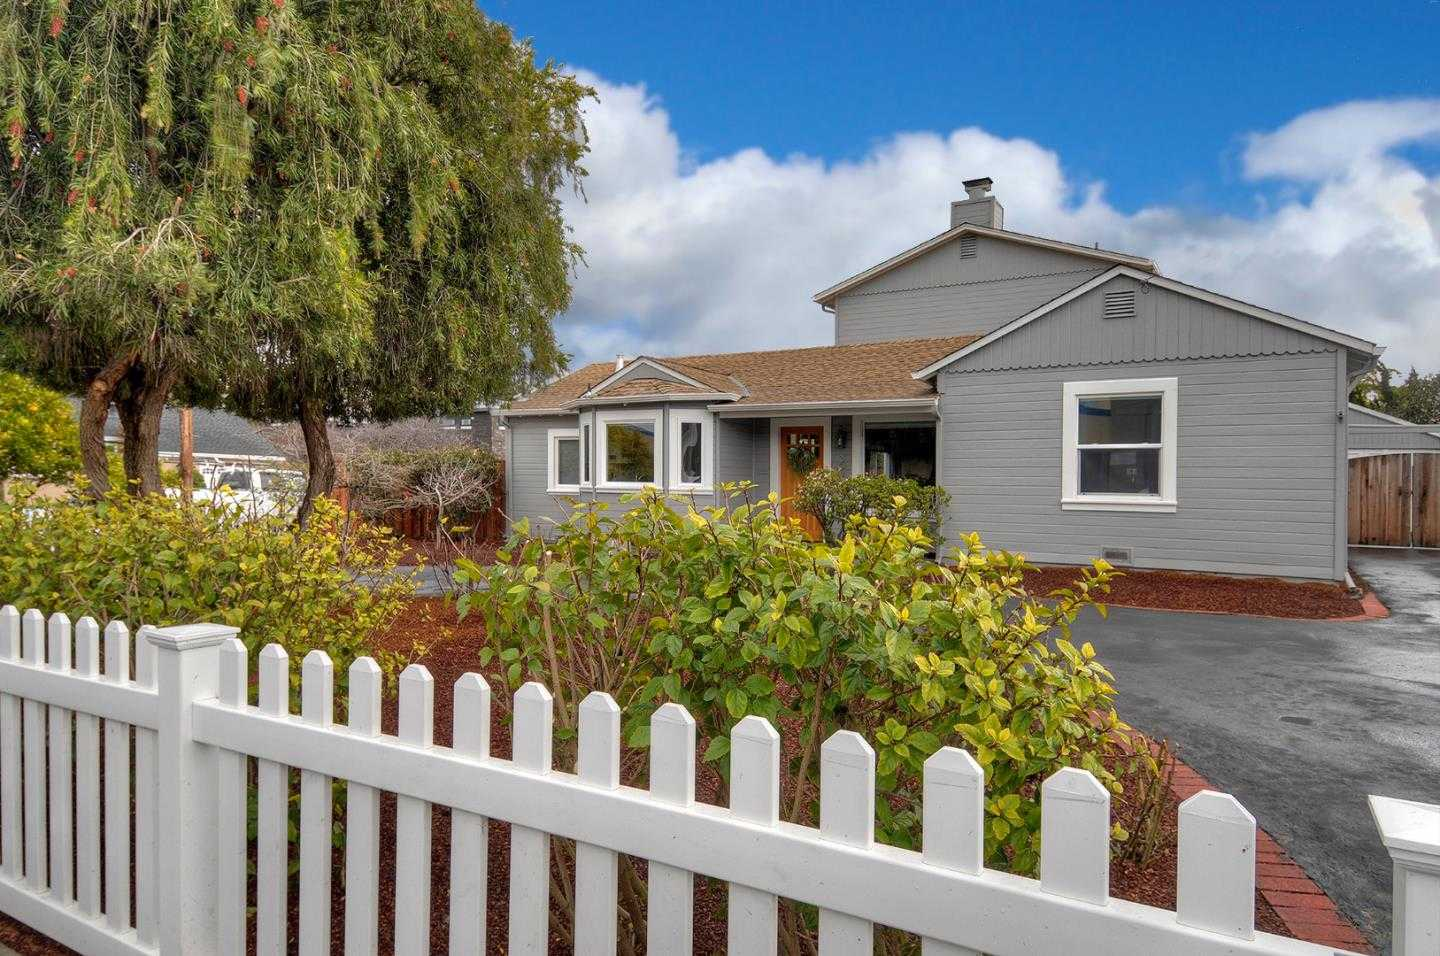 303 28th Ave San Mateo, CA 94403